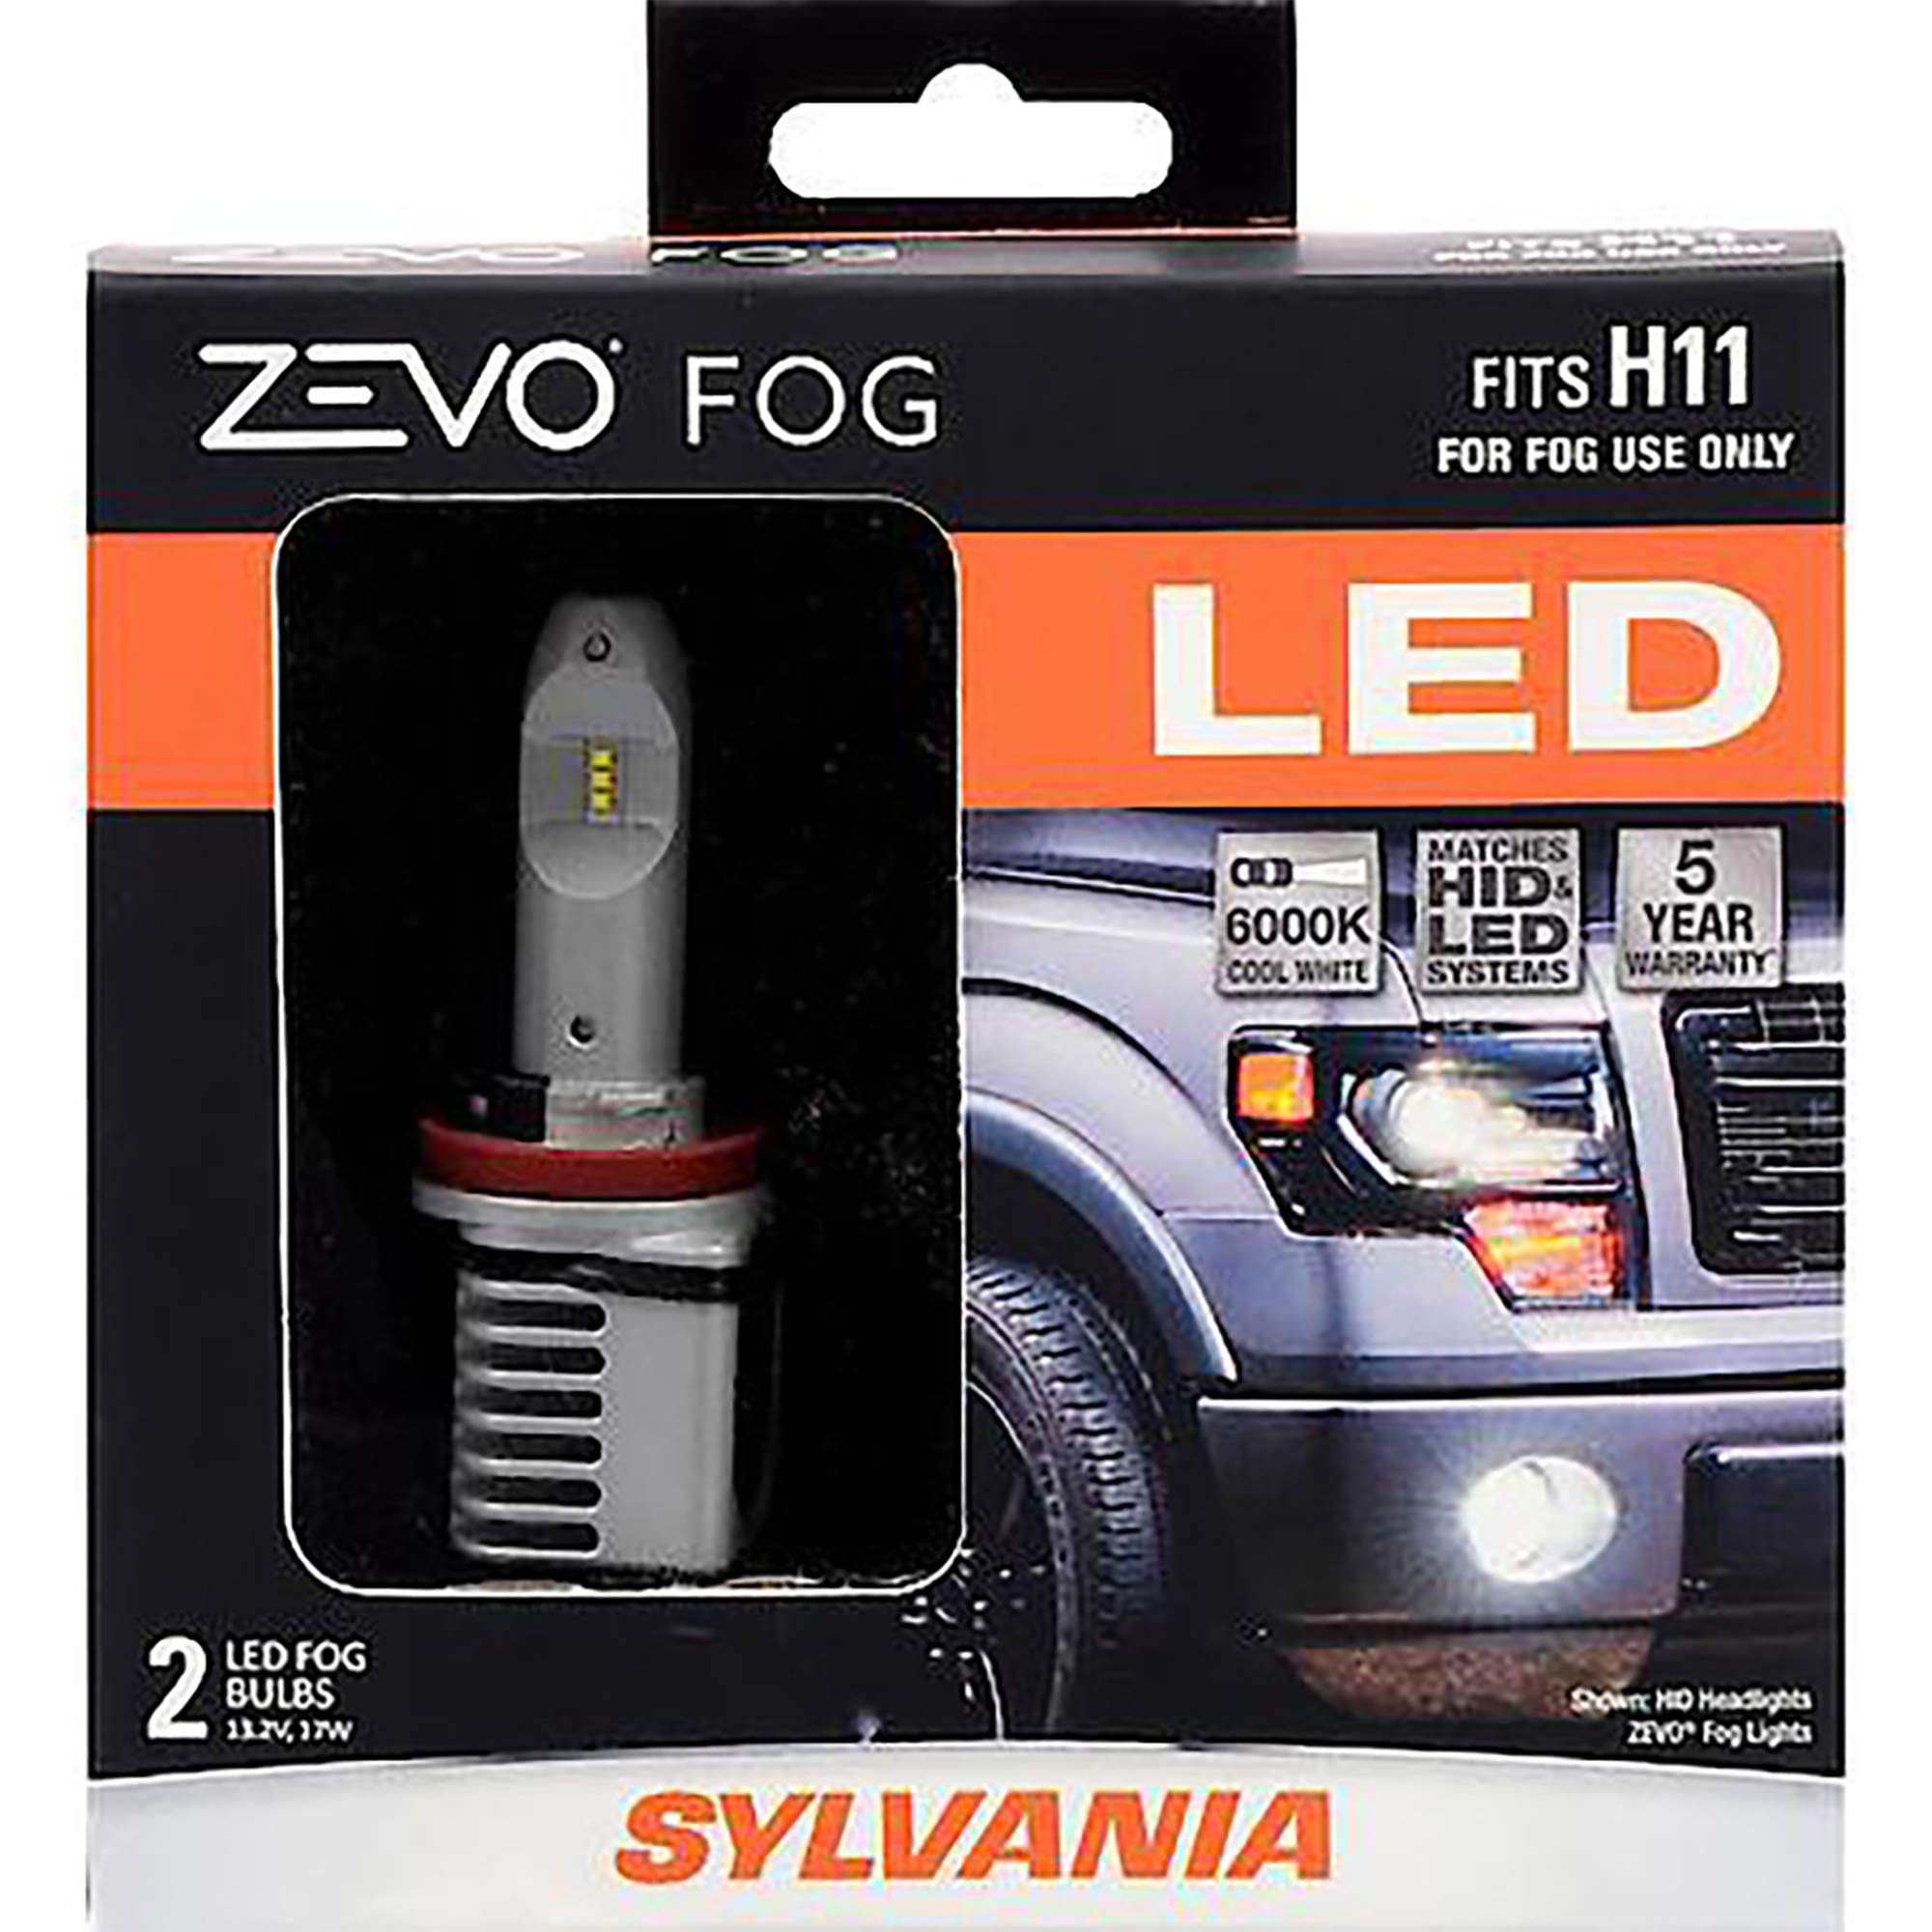 SYLVANIA - H11 ZEVO FOG LED - Premium Quality Plug and Play LED Fog Lights, Bright White Light Output, Matches HID & LED Headlight Lighting Systems, Added Style & Performance (Contains 2 Bulbs) by SYLVANIA